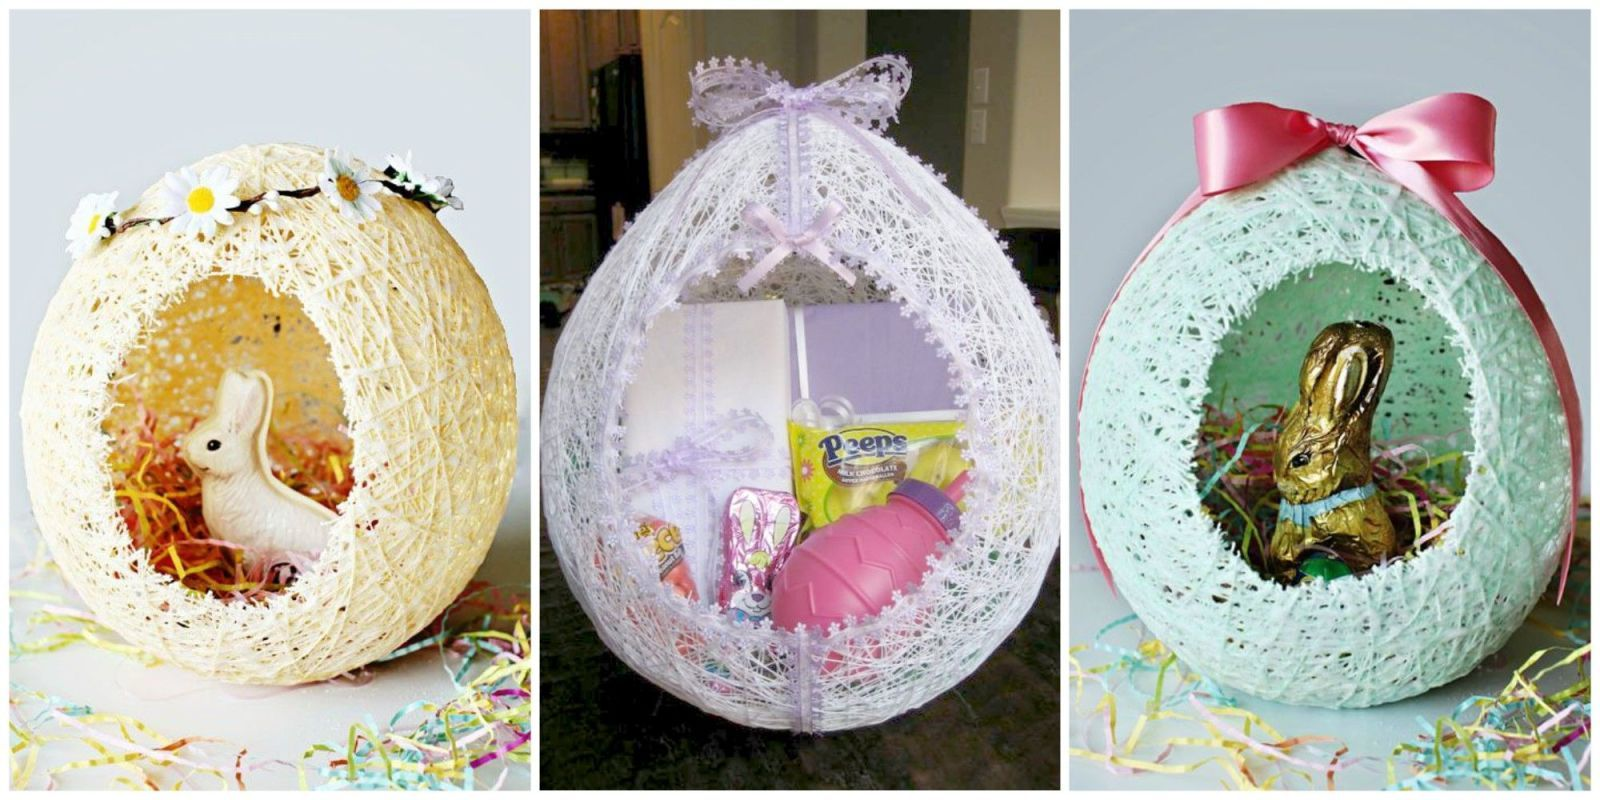 Perfect Homemade Easter Baskets Are Quickly Becoming The New Go To Gift And  Decoration For The Springtime Holiday. Rather Than Using The Typical  Store Bought ...